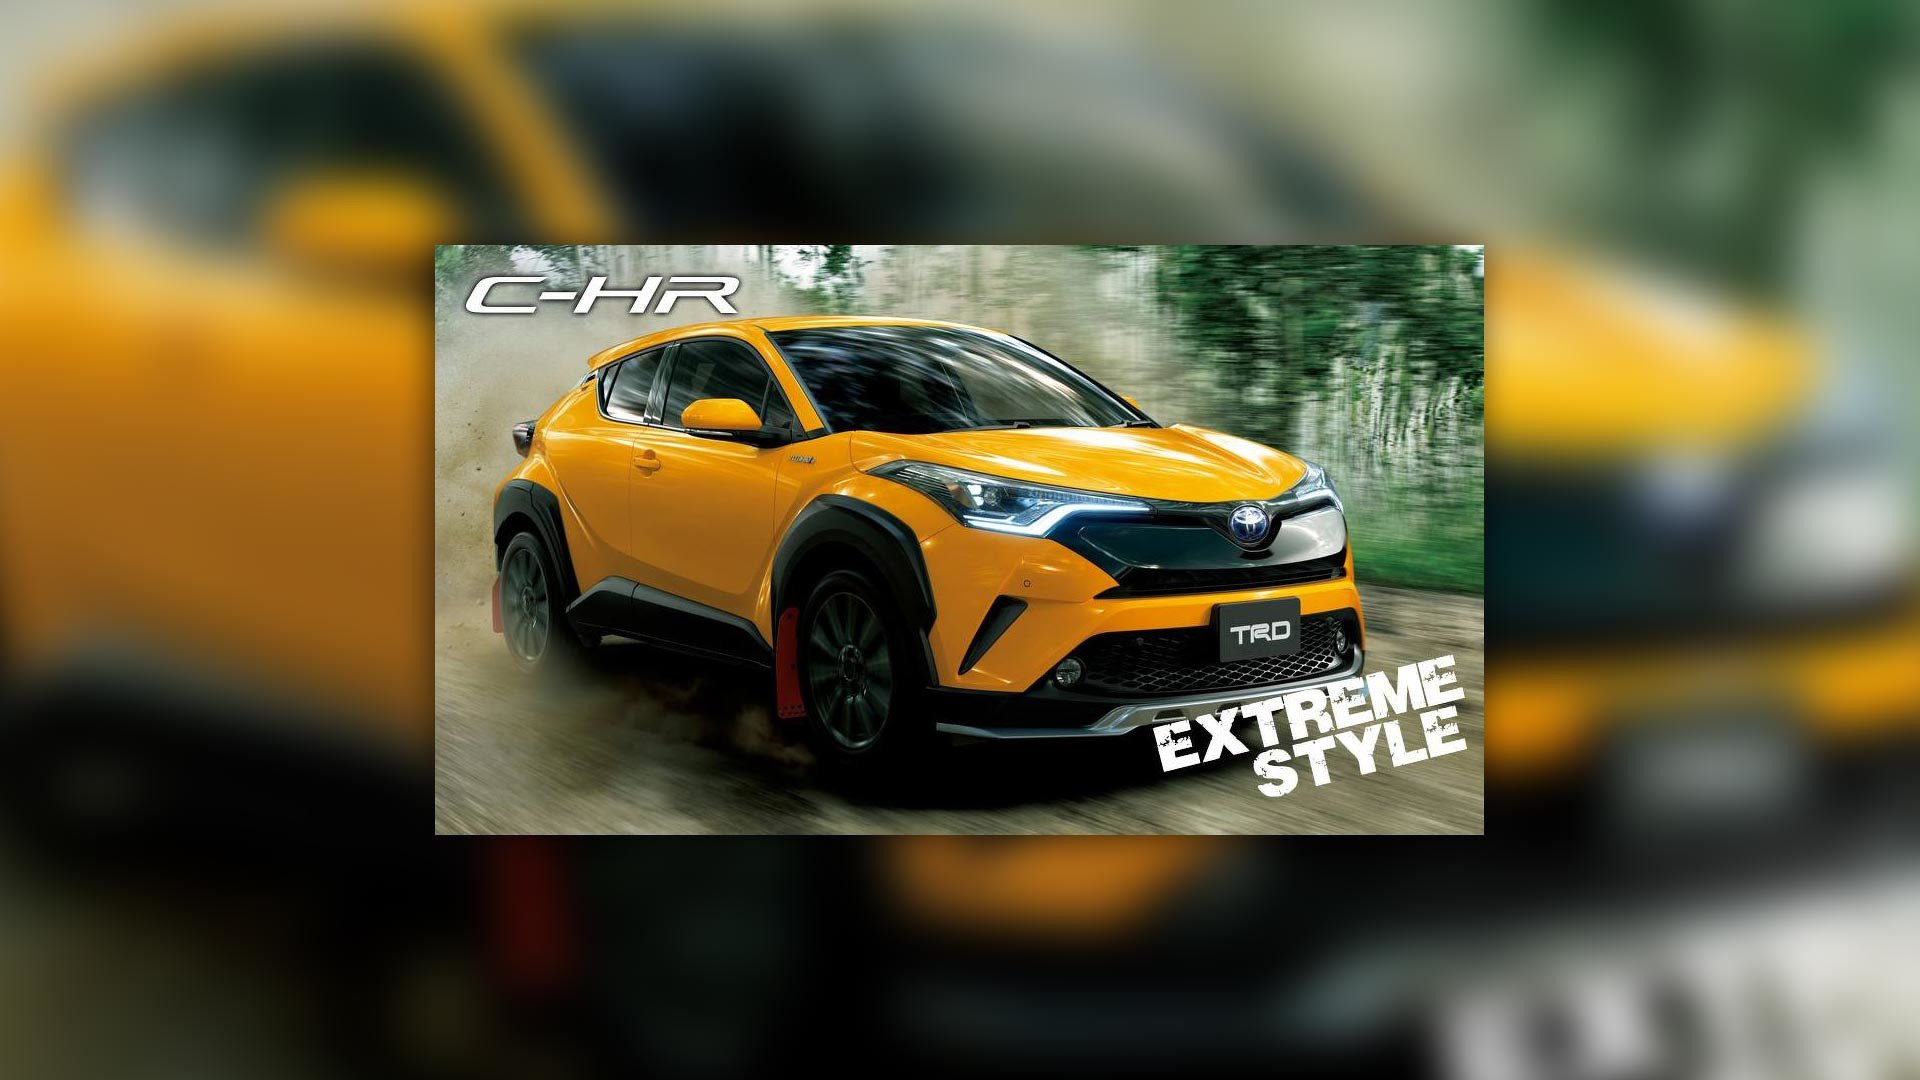 Toyota CH-R TRD Extreme Style